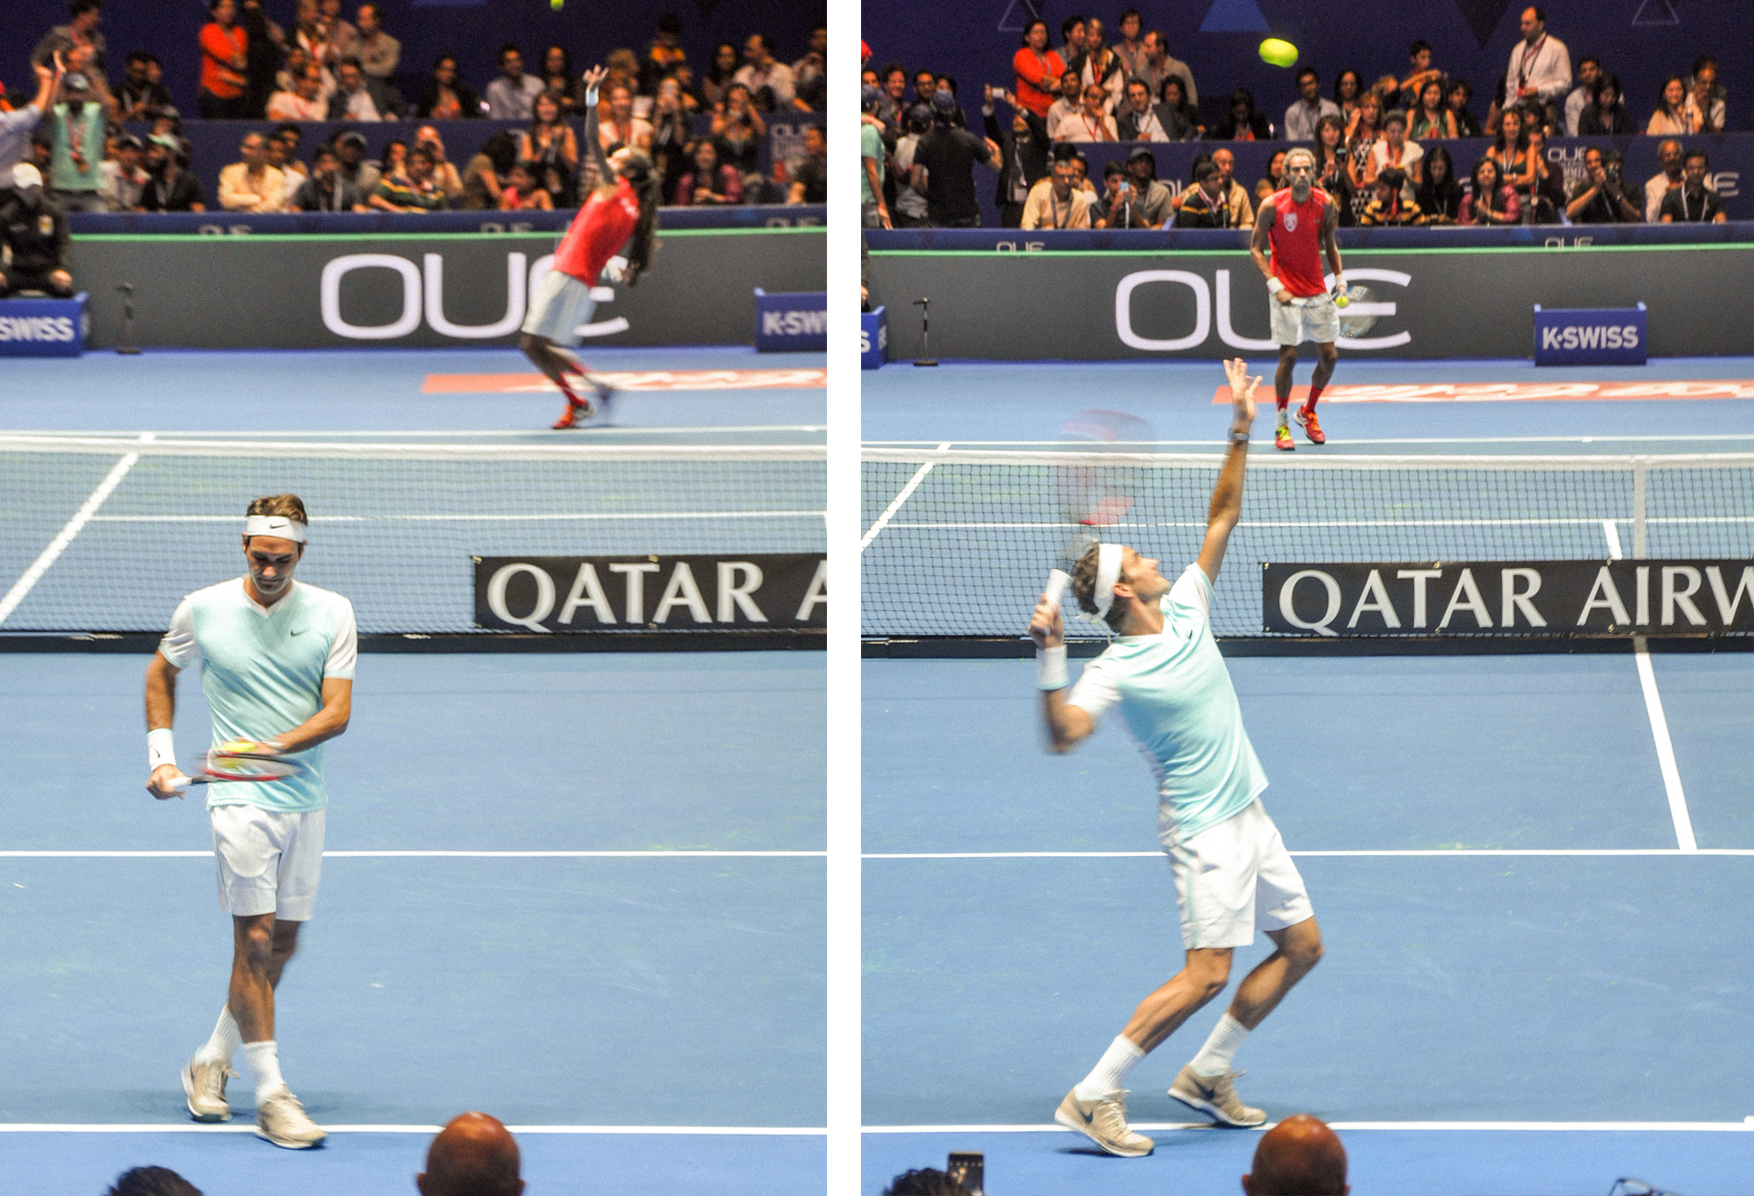 Roger Federer warming up. JUST LOOK AT THAT FORM!